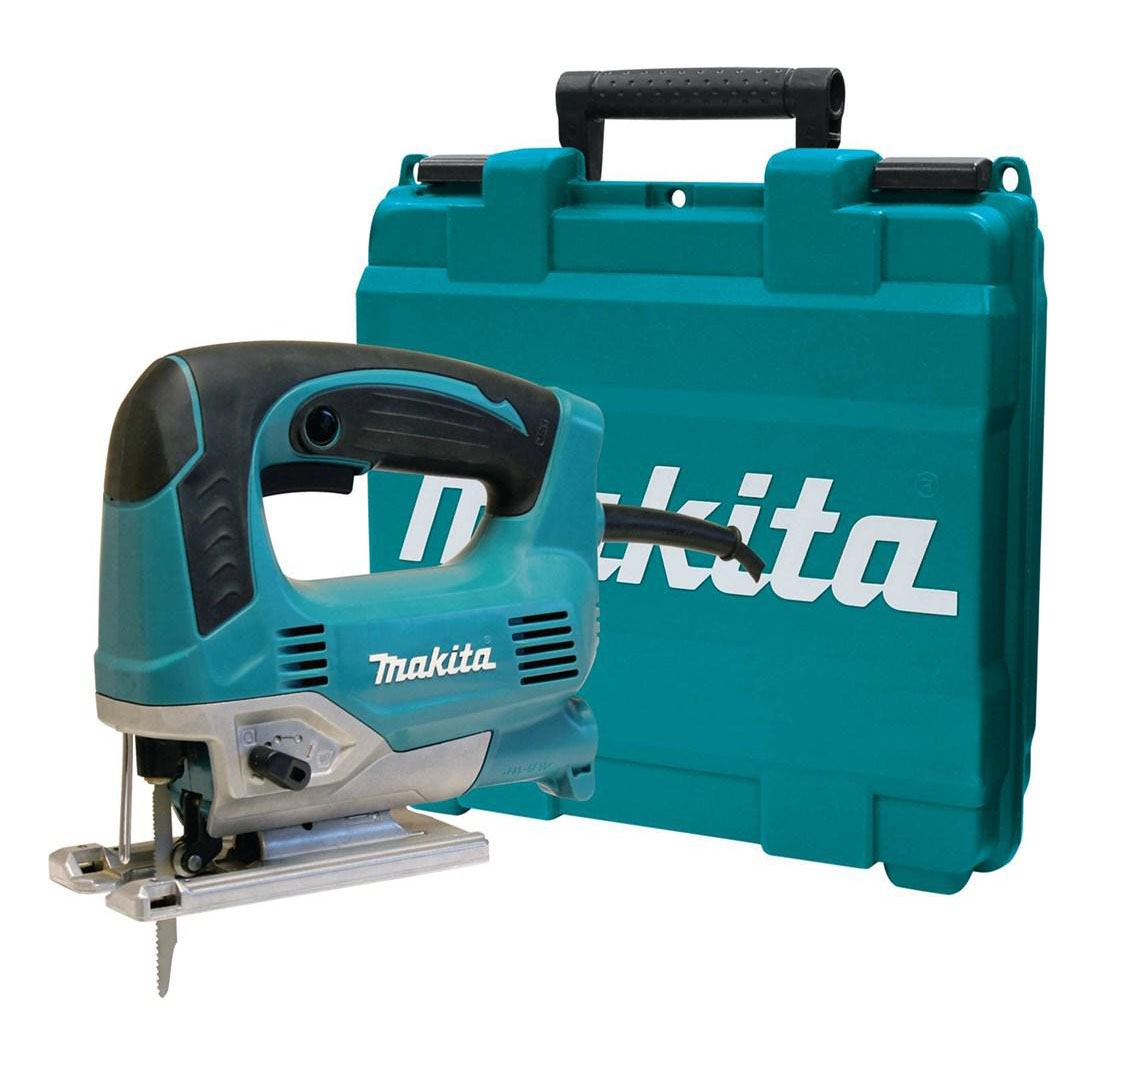 Makita jigsaw 4350fct with led light stonetooling makita jig saw 4350fct with led light greentooth Image collections